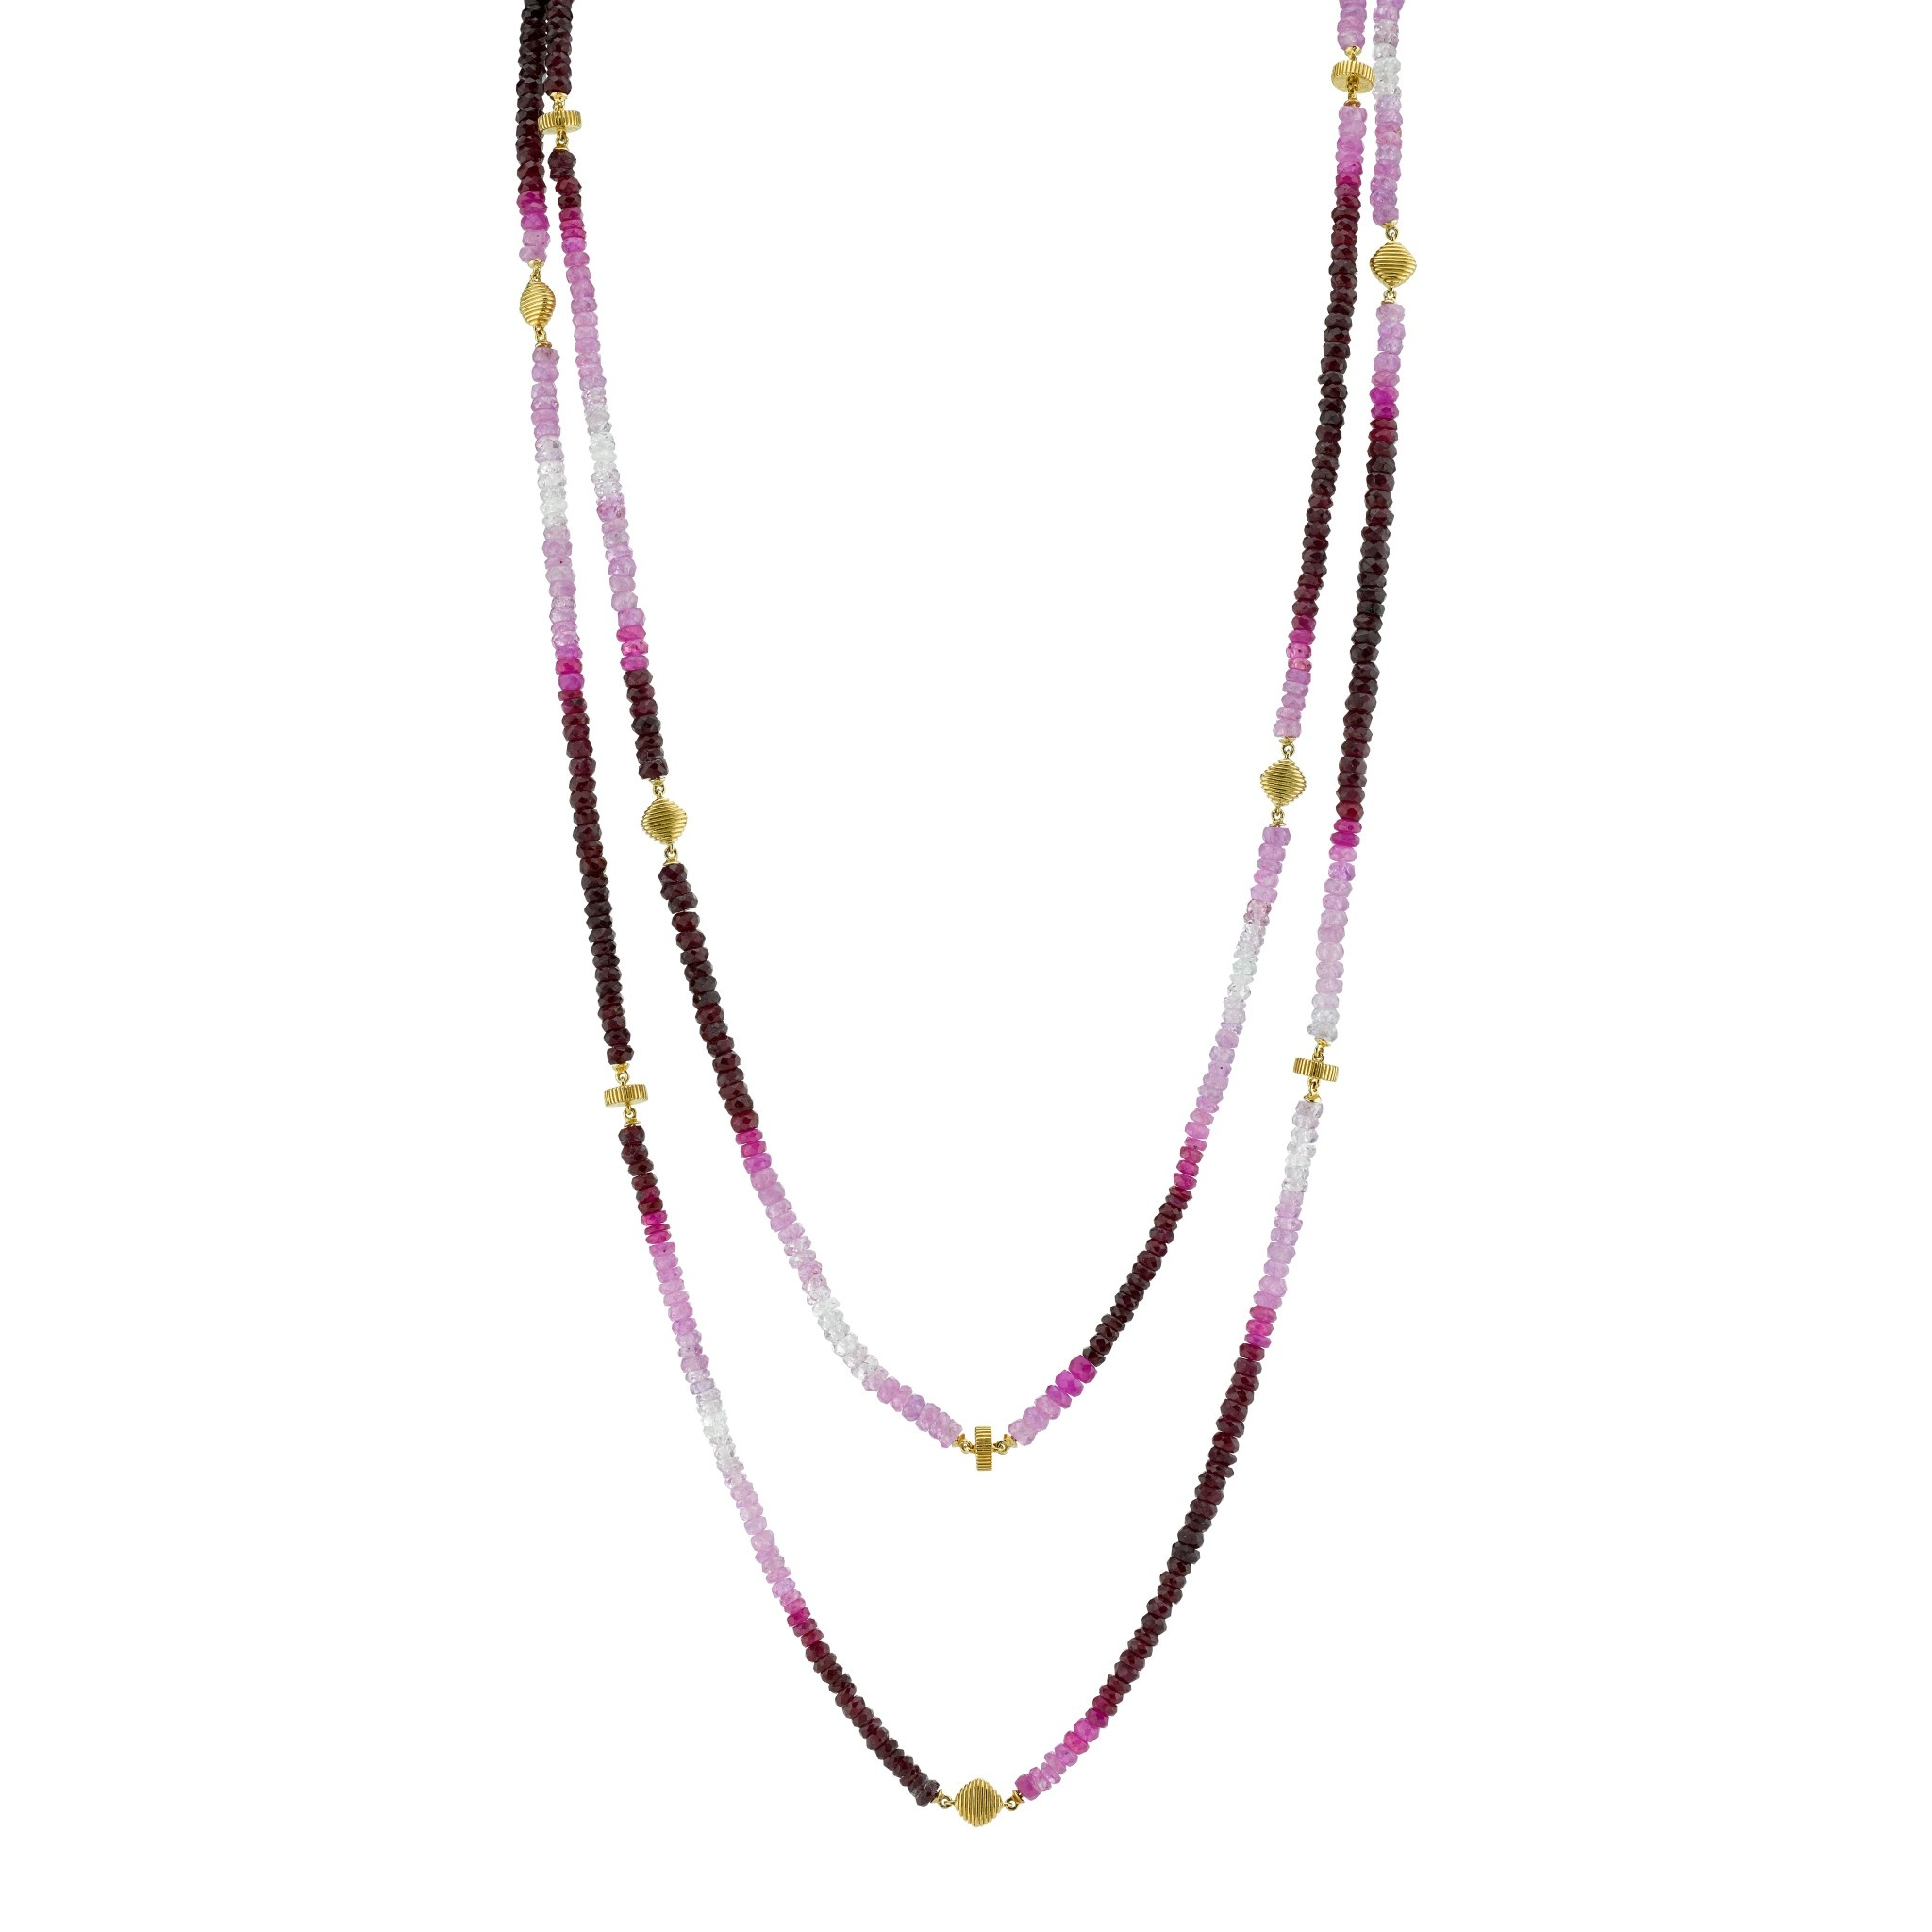 Graduated Ruby Chain with Strie Detail